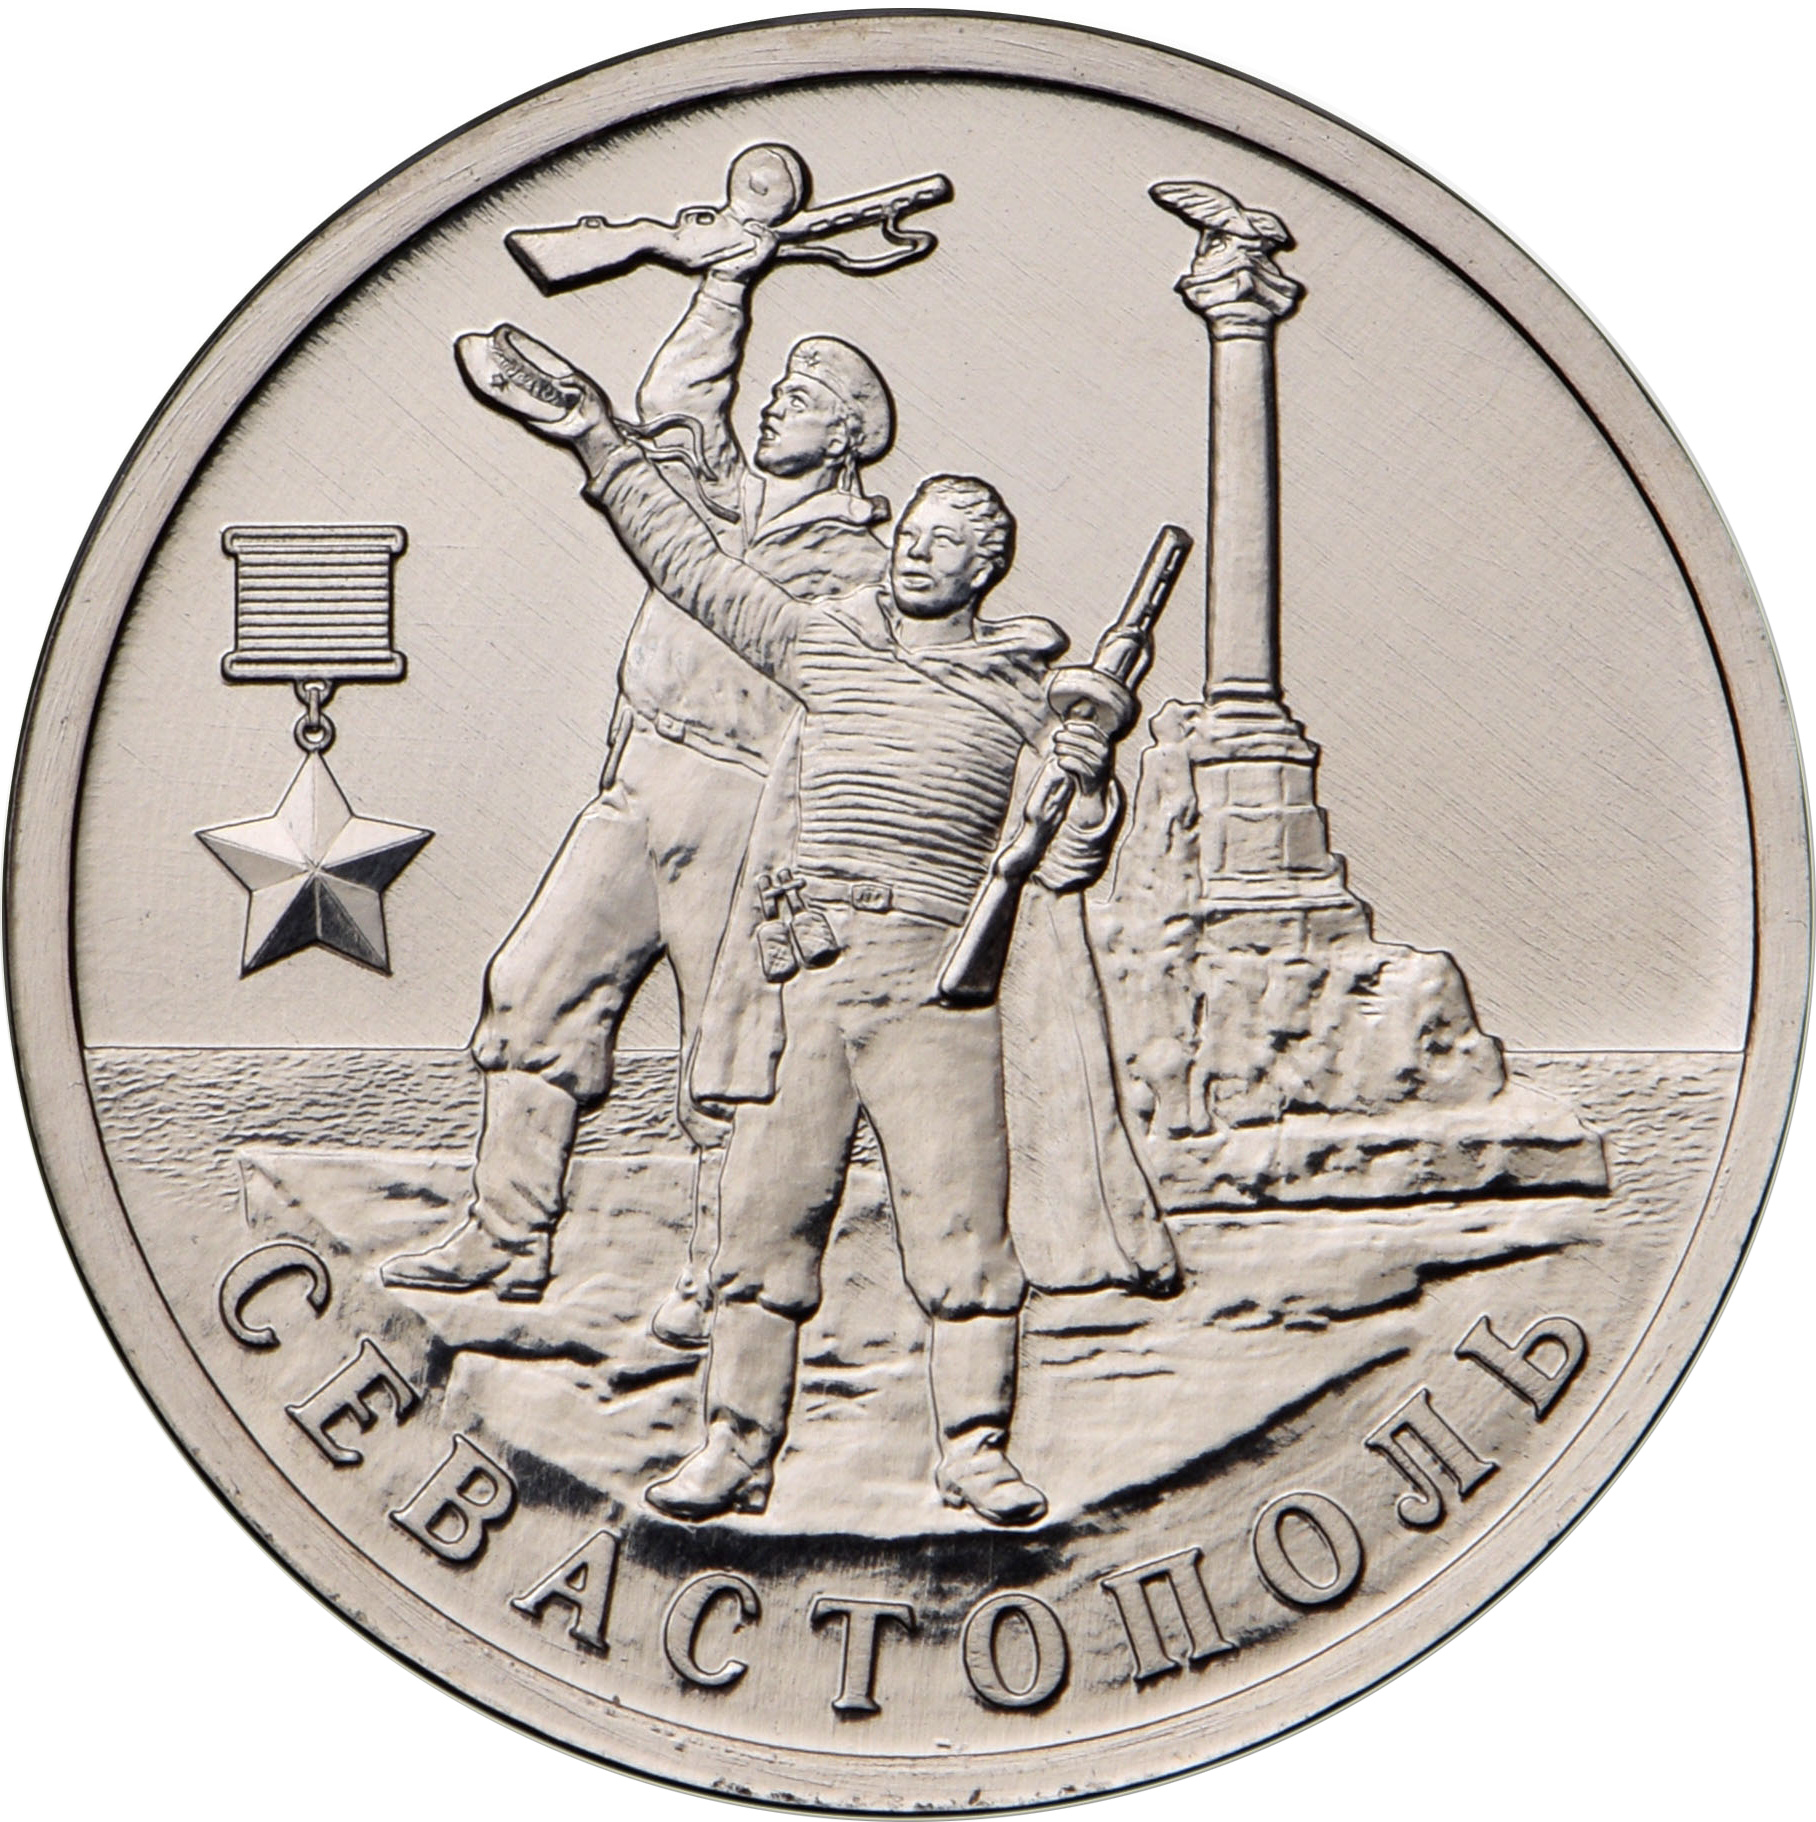 Details about  /Russia 2 roubles 2017 coin Hero City of Sevastopol WWII UNC from bank bag